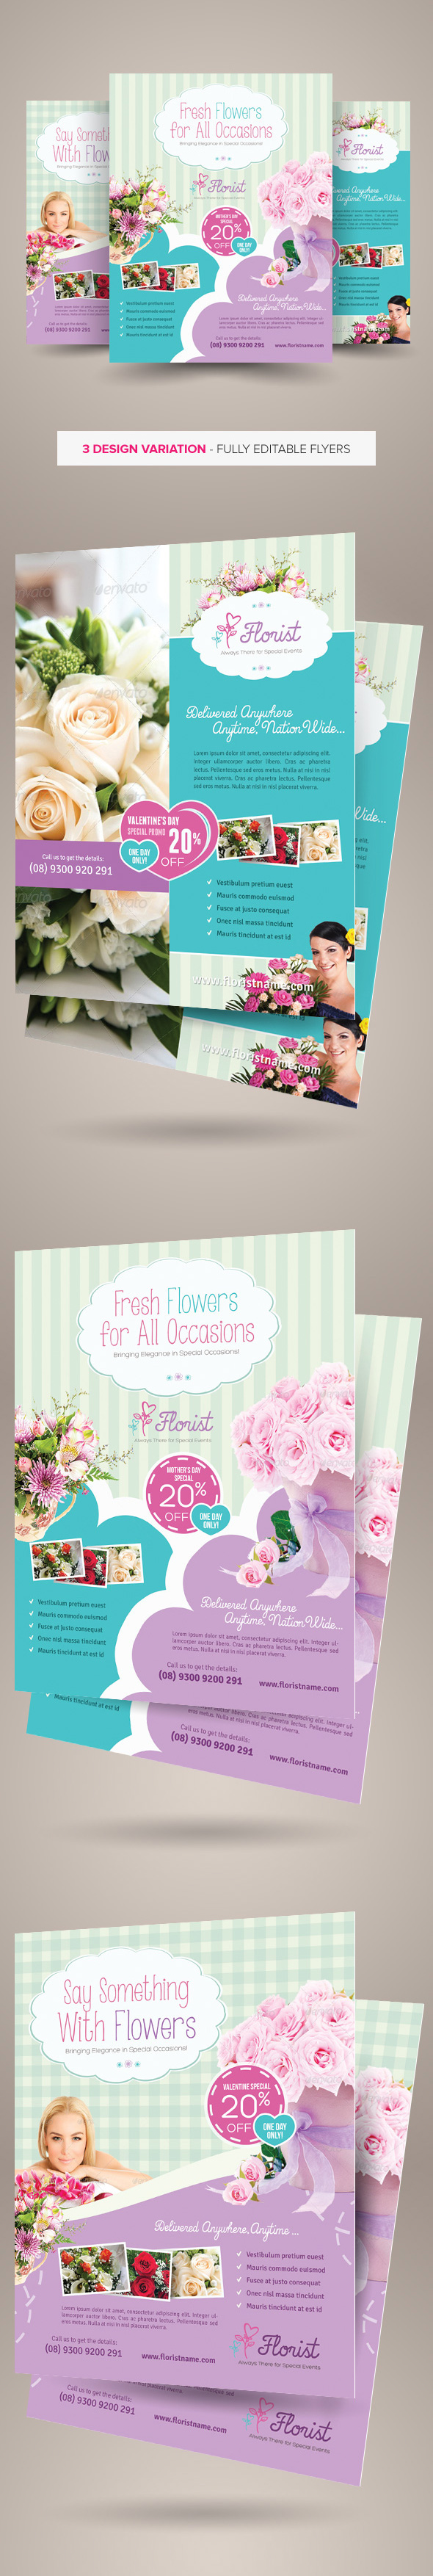 flower shop flyer templates on behance flower shop flyer templates are fully editable design templates created for on graphic river more info of the templates and how to get the sourcefiles